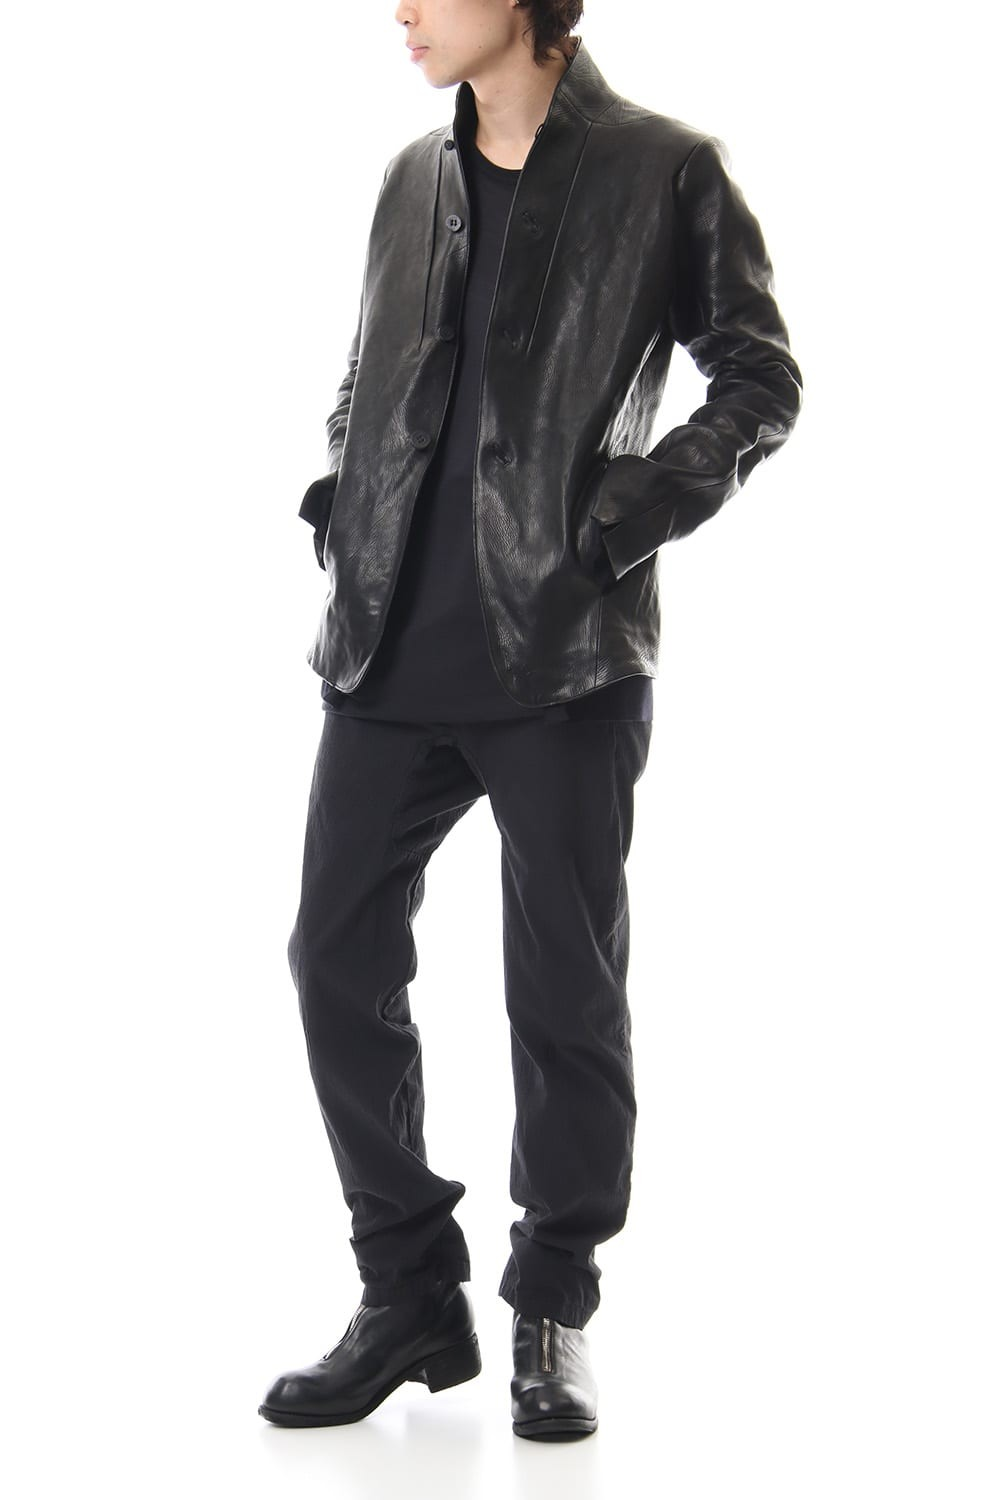 Limited Japan calf leather jacket - ST105-0029A